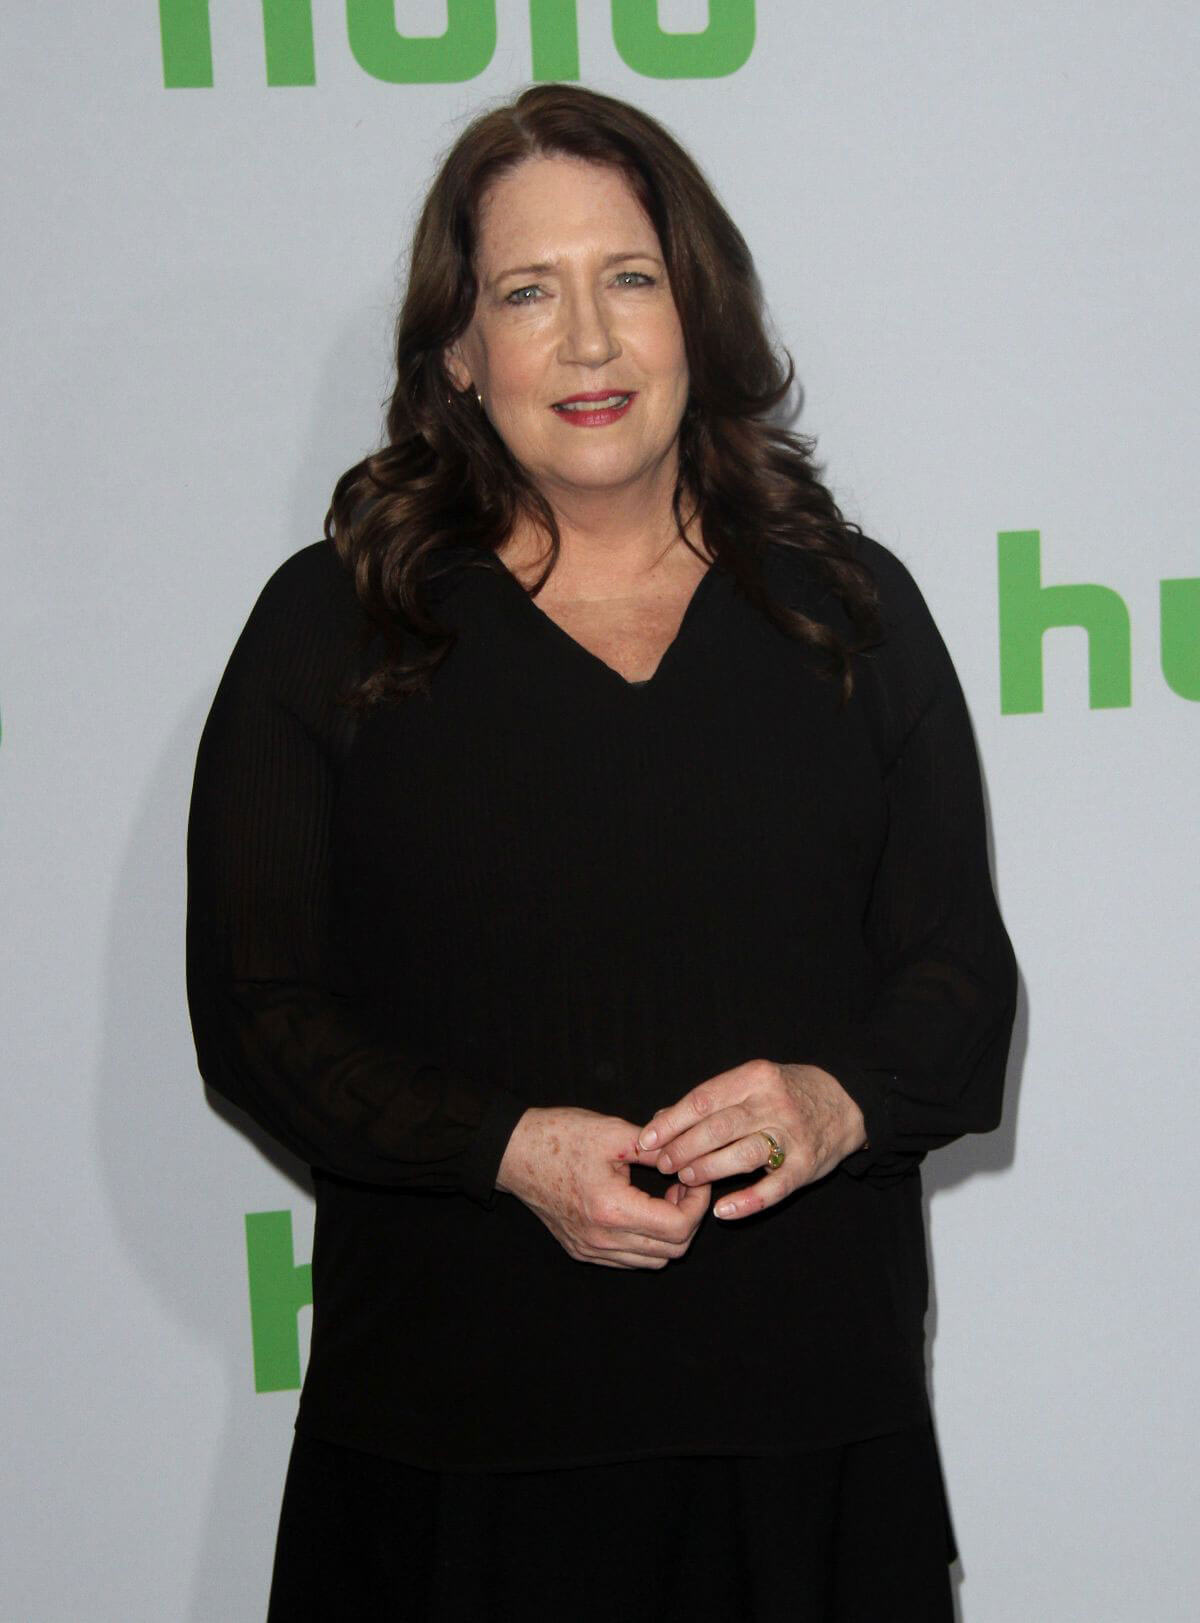 Ann Dowd at Hulu's Winter TCA 2017 in Los Angeles